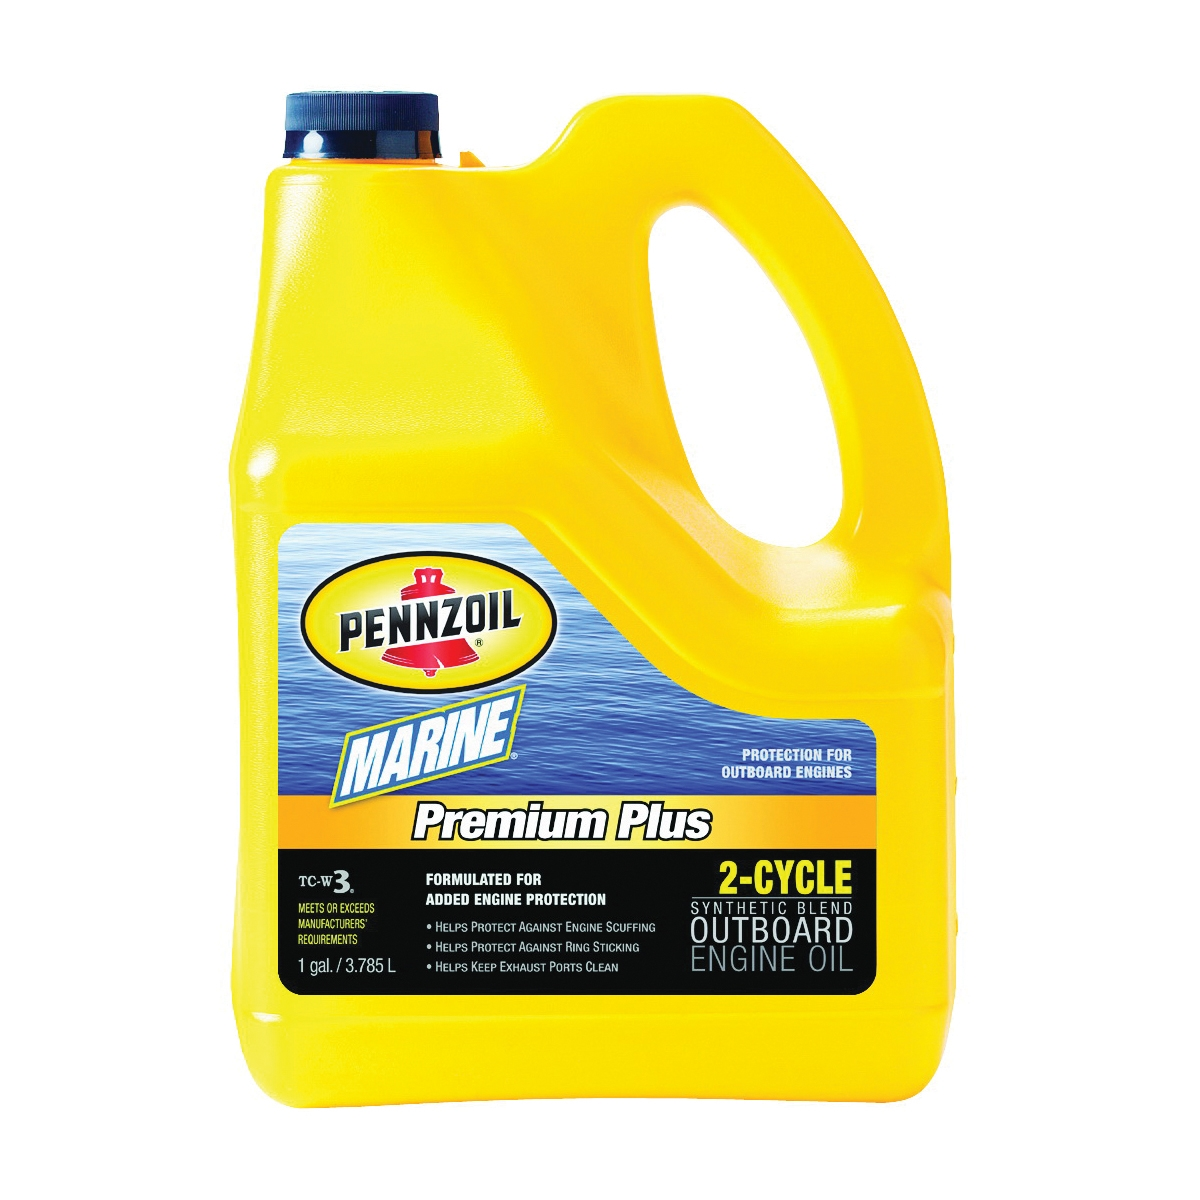 Picture of Pennzoil Premium Plus 550022757/5073655 Engine Oil, 1 gal Package